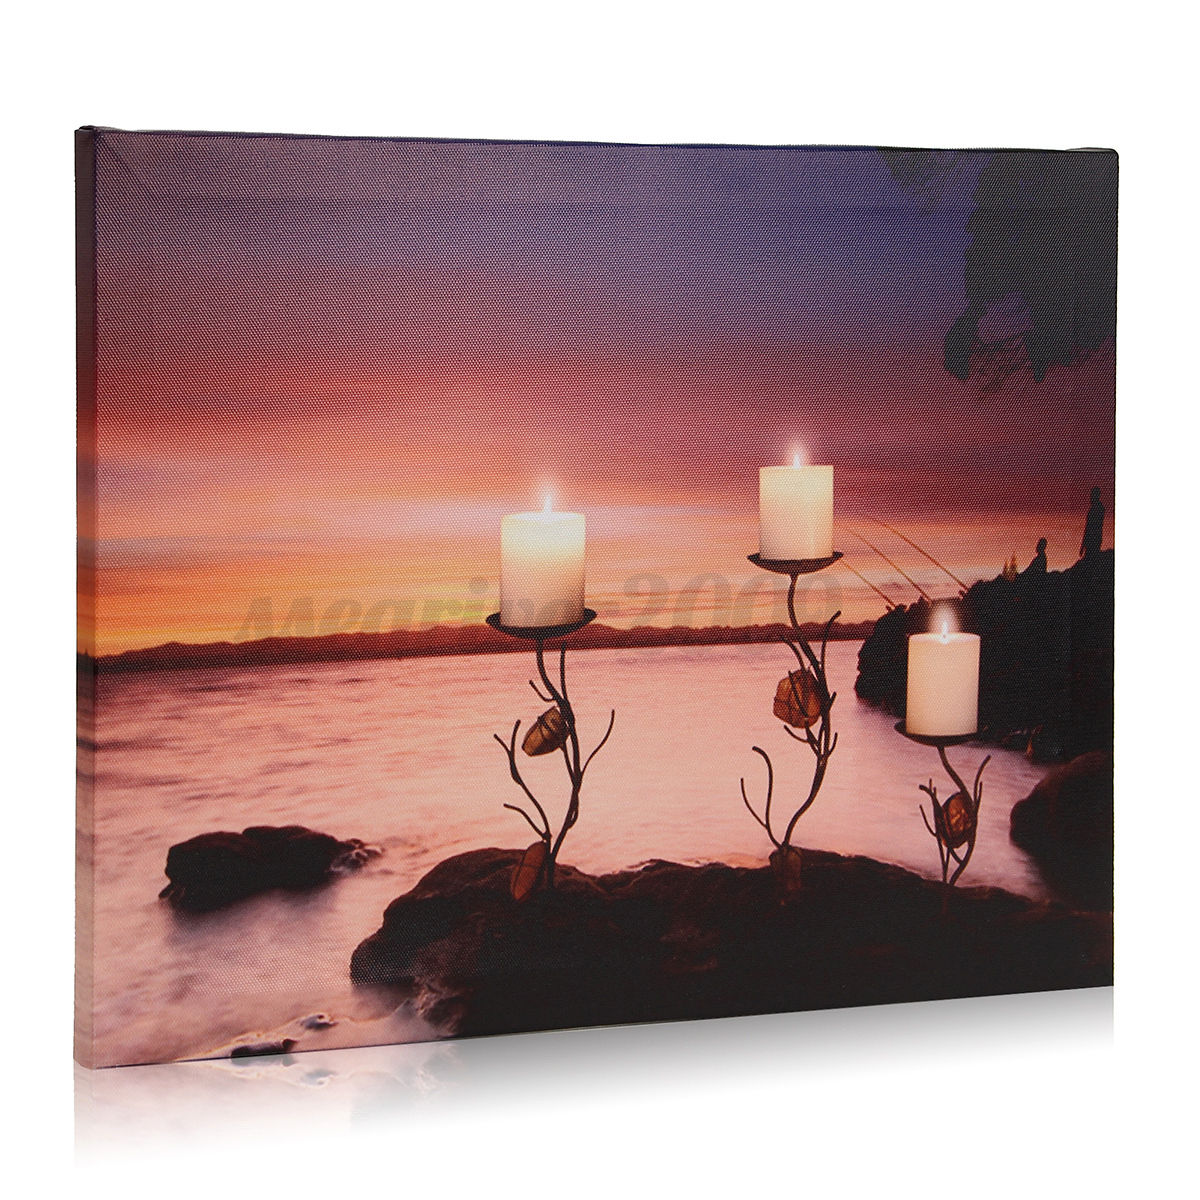 led light up winter merry christmas canvas wall painting picture xmas home decor ebay. Black Bedroom Furniture Sets. Home Design Ideas